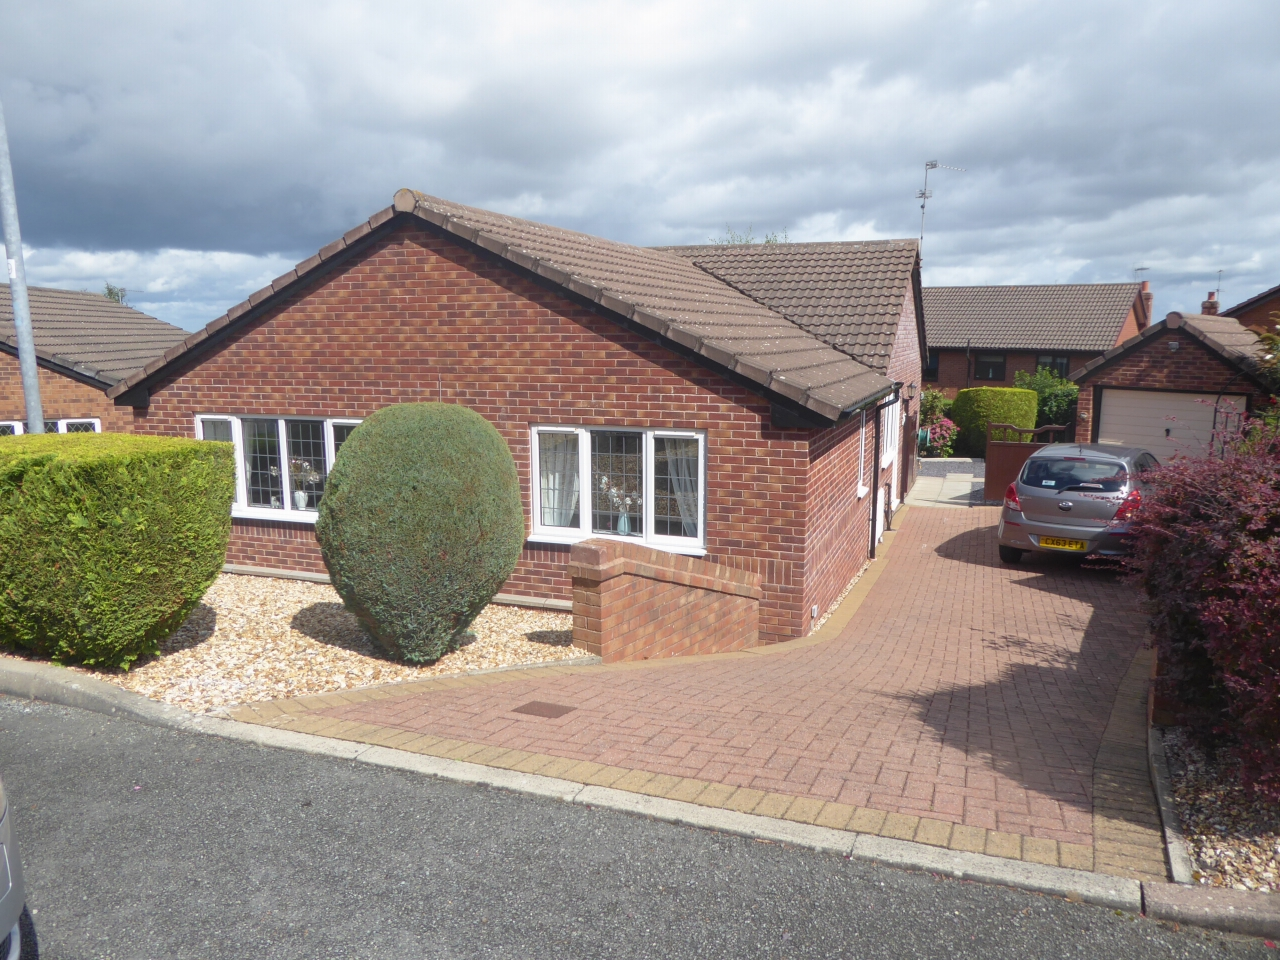 3 bedroom detached bungalow Sold in Abergele - Photograph 1